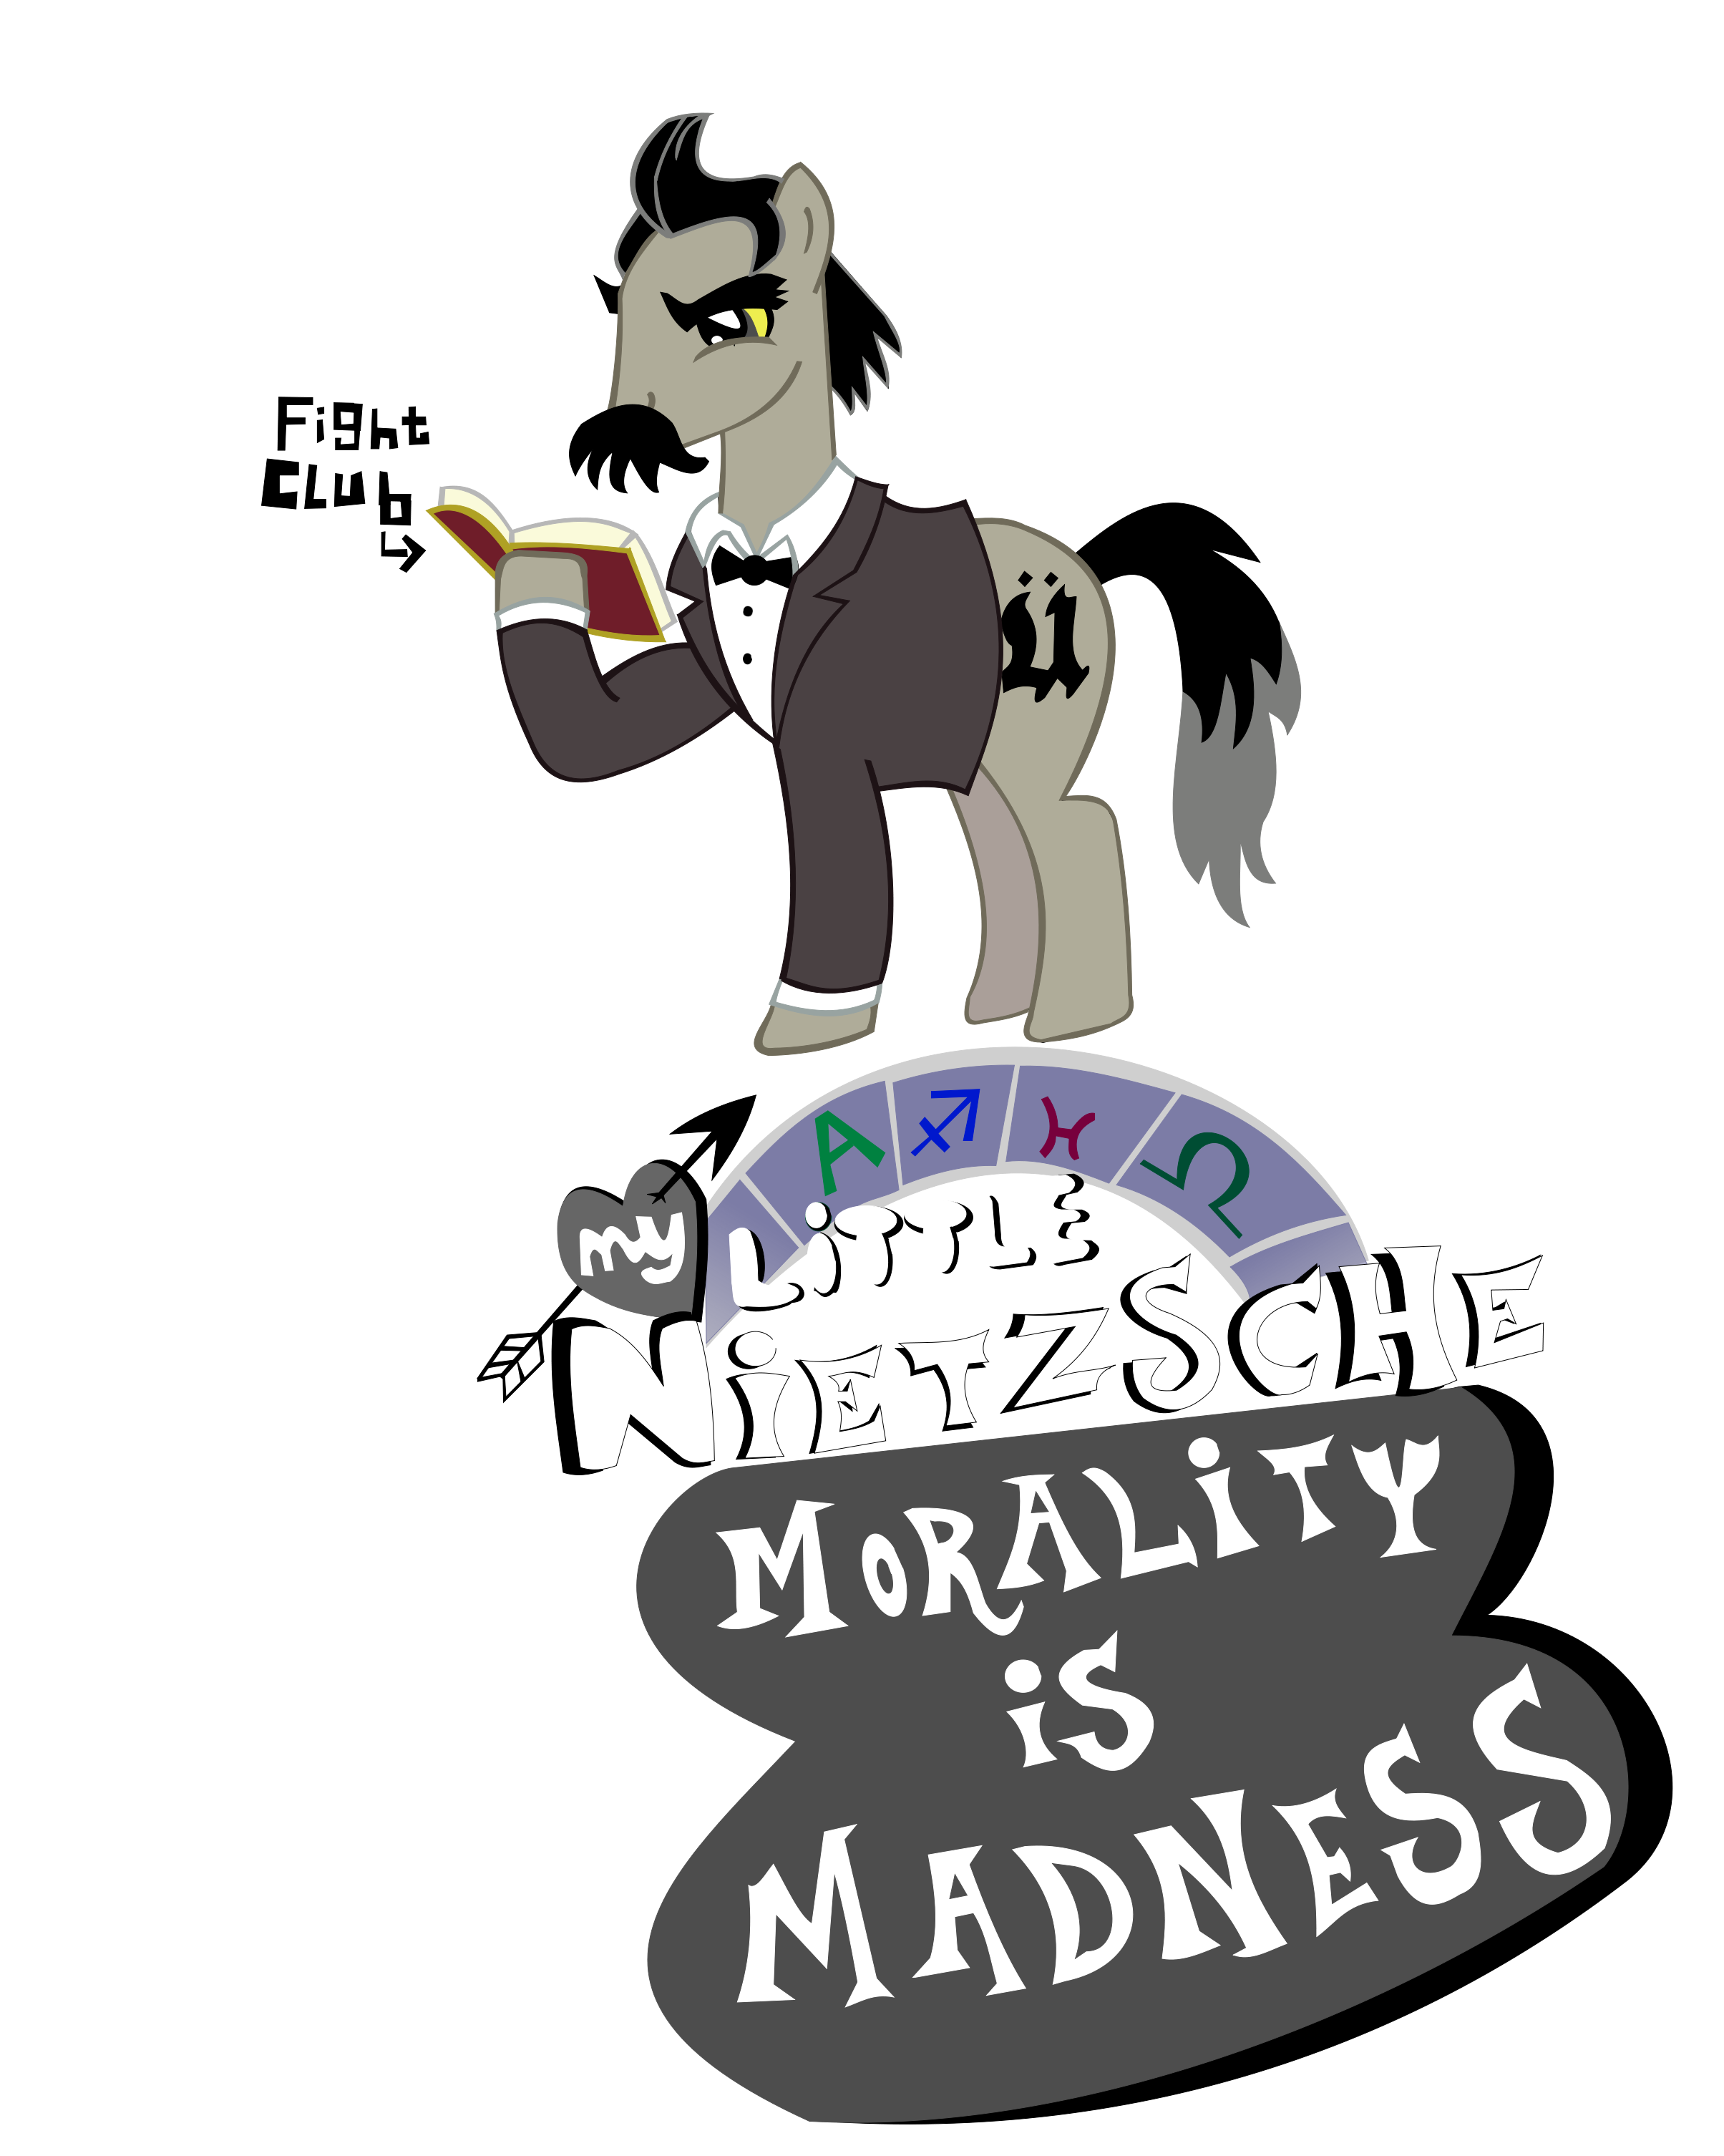 Discussion clipart intellect. Pony nietzsche my little